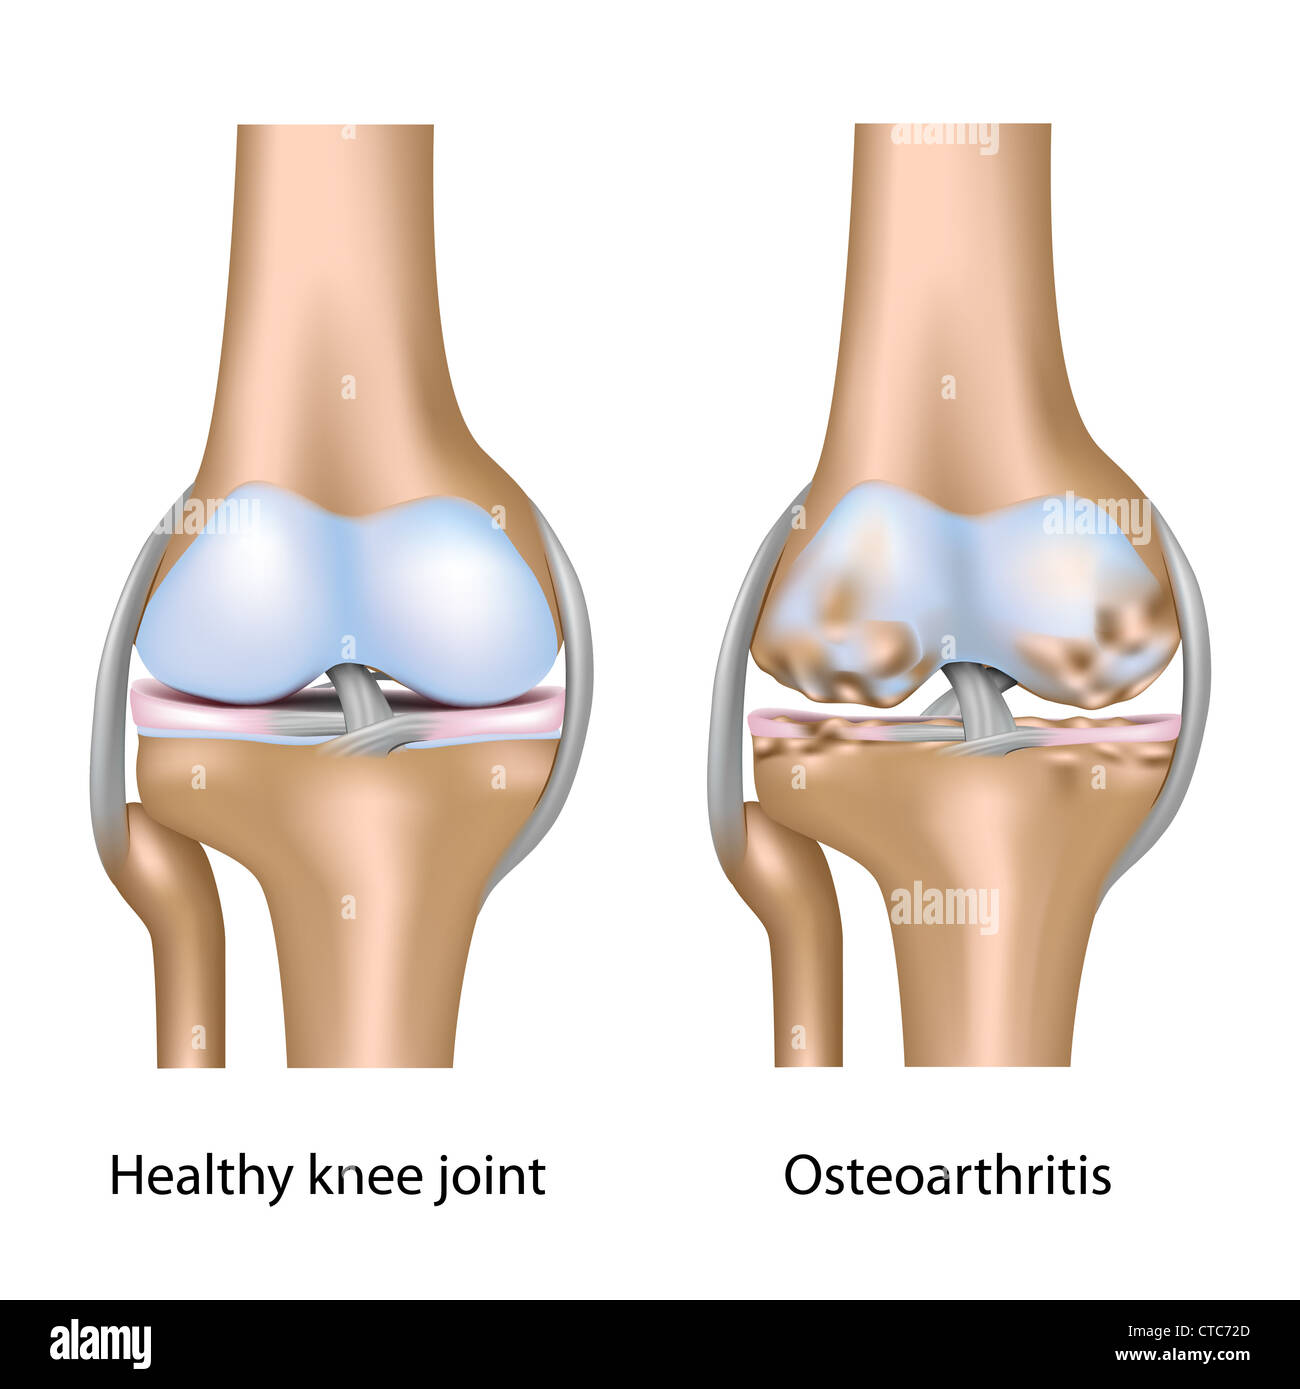 Osteoarthritis of knee joint - Stock Image